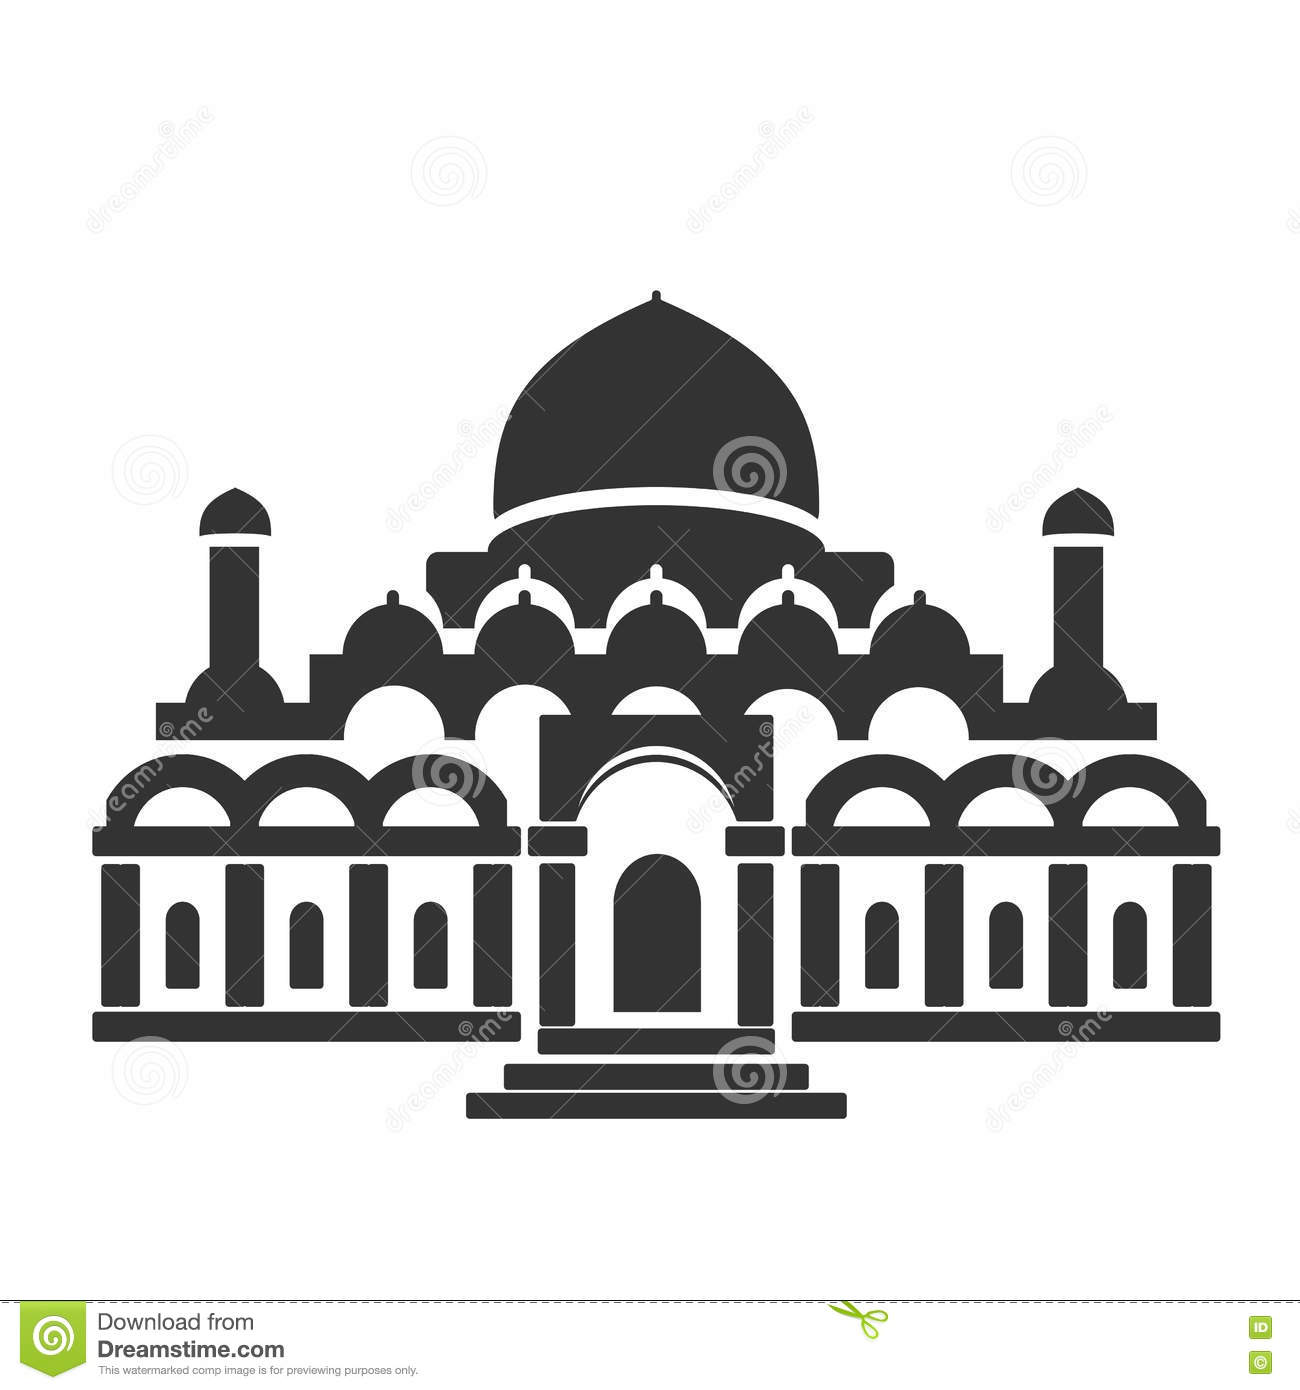 muslim singles in temple Can a teenaged muslim guy date a mormon girl to get a temple recommend as many muslims have told me that dating is absolutely haraam in islam.